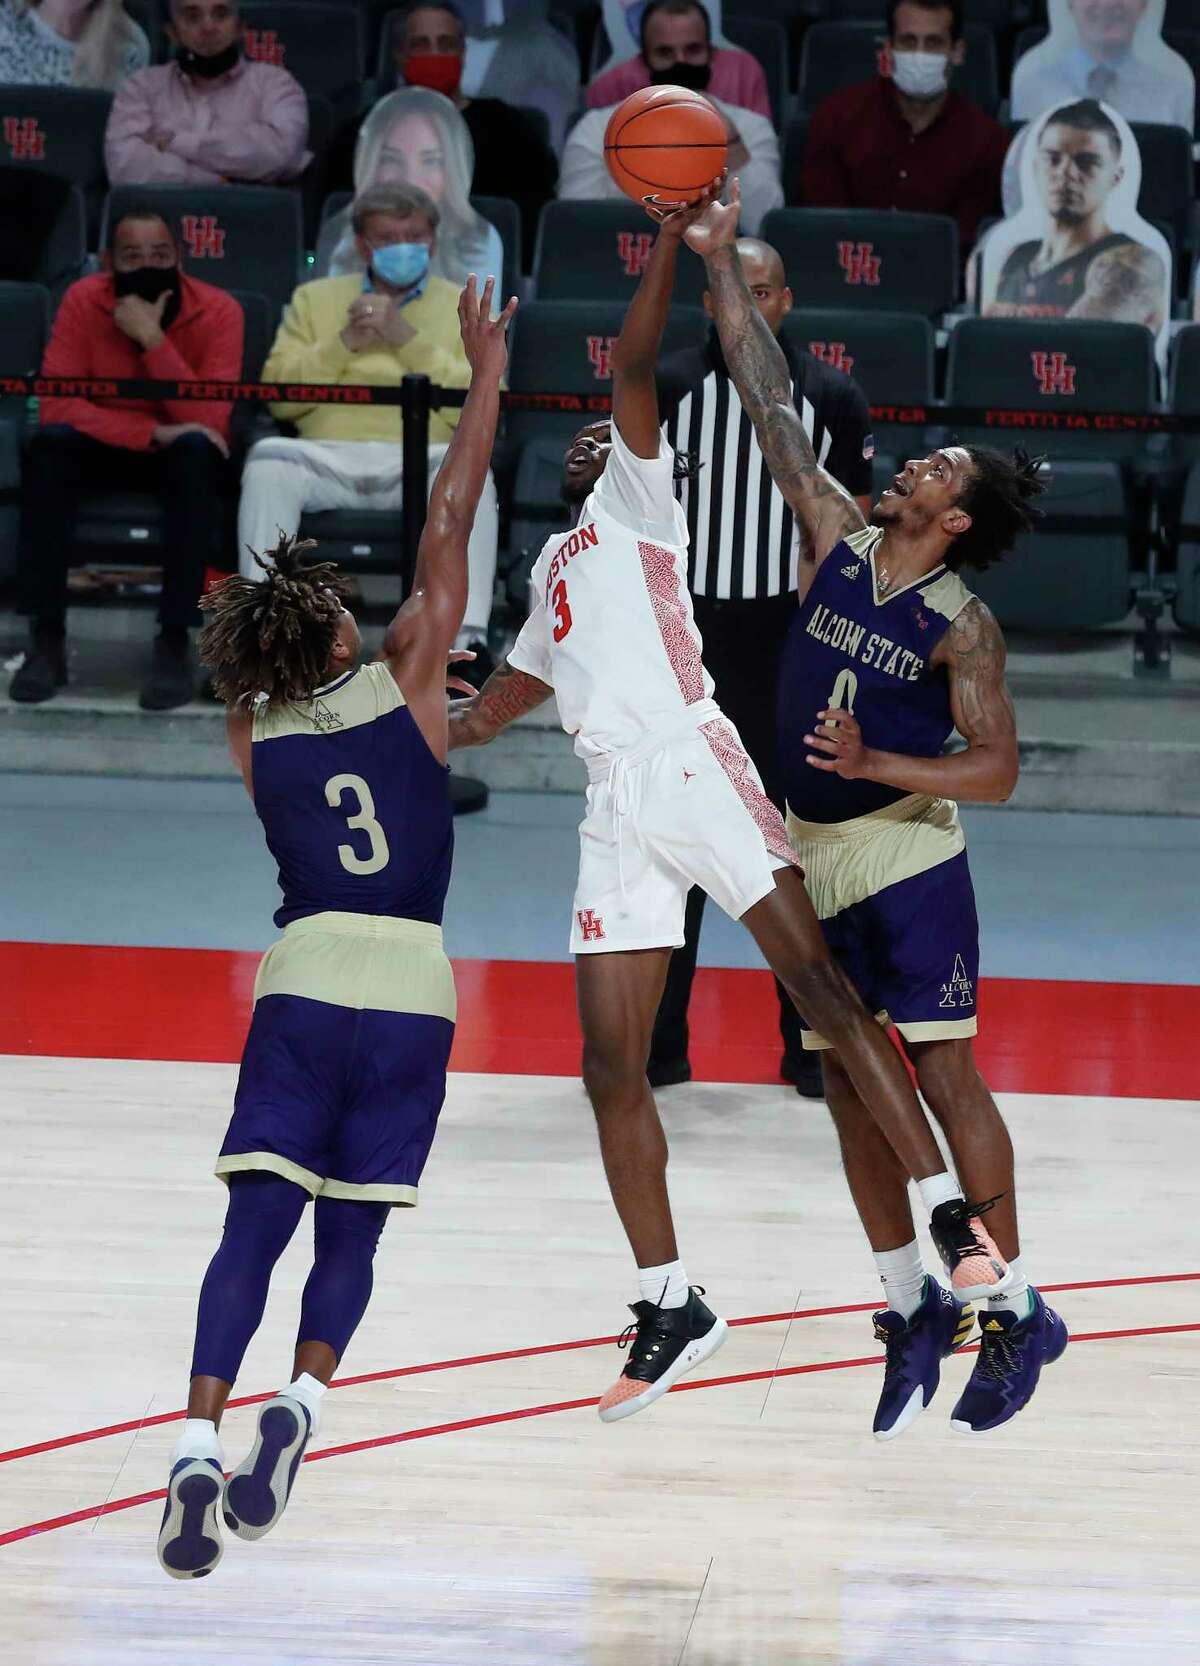 Houston Cougars guard DeJon Jarreau (3) tries to get control of the ball against the defense of Alcorn State Braves guards Troymain Crosby (0) and David Pierce (3) during the first half of an NCAA men's basketball game at Fertitta Center Sunday, December 20, 2020, in Houston.